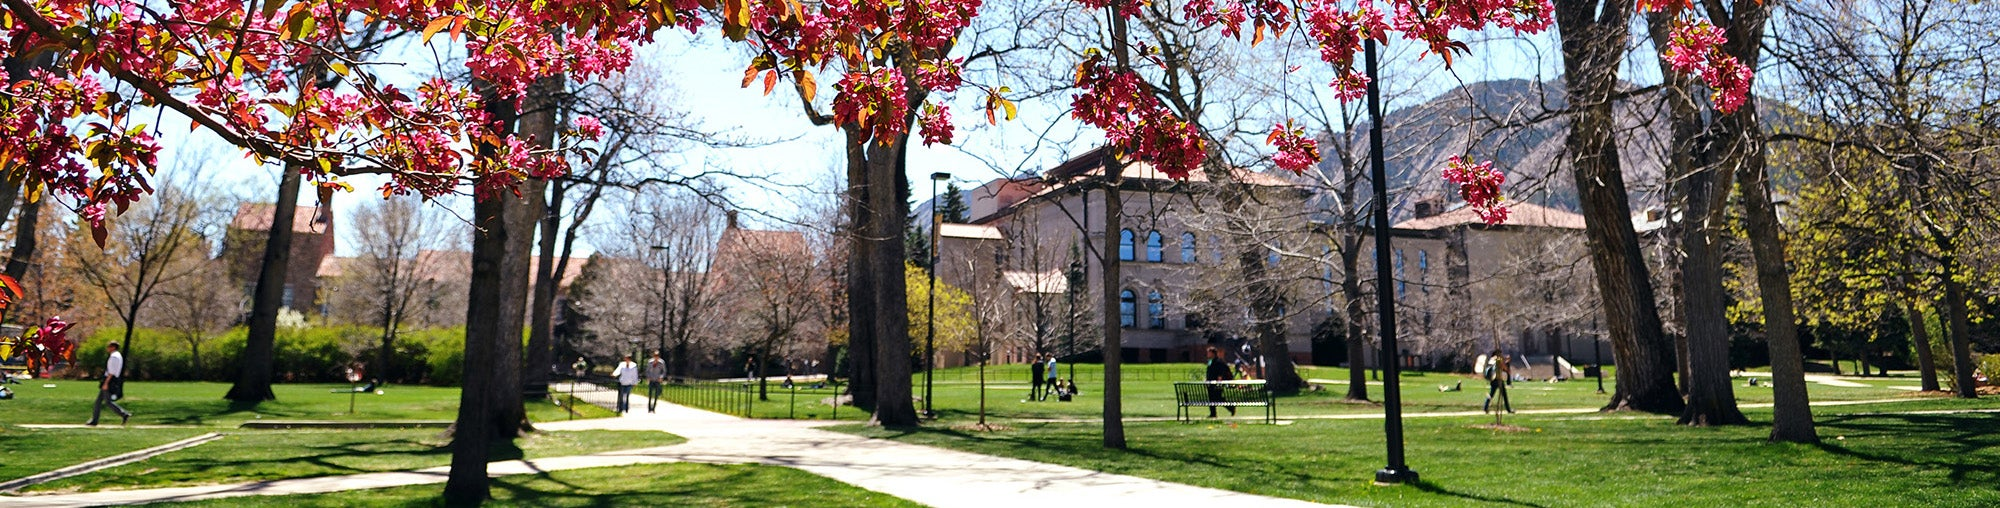 CU-Boulder campus in the spring